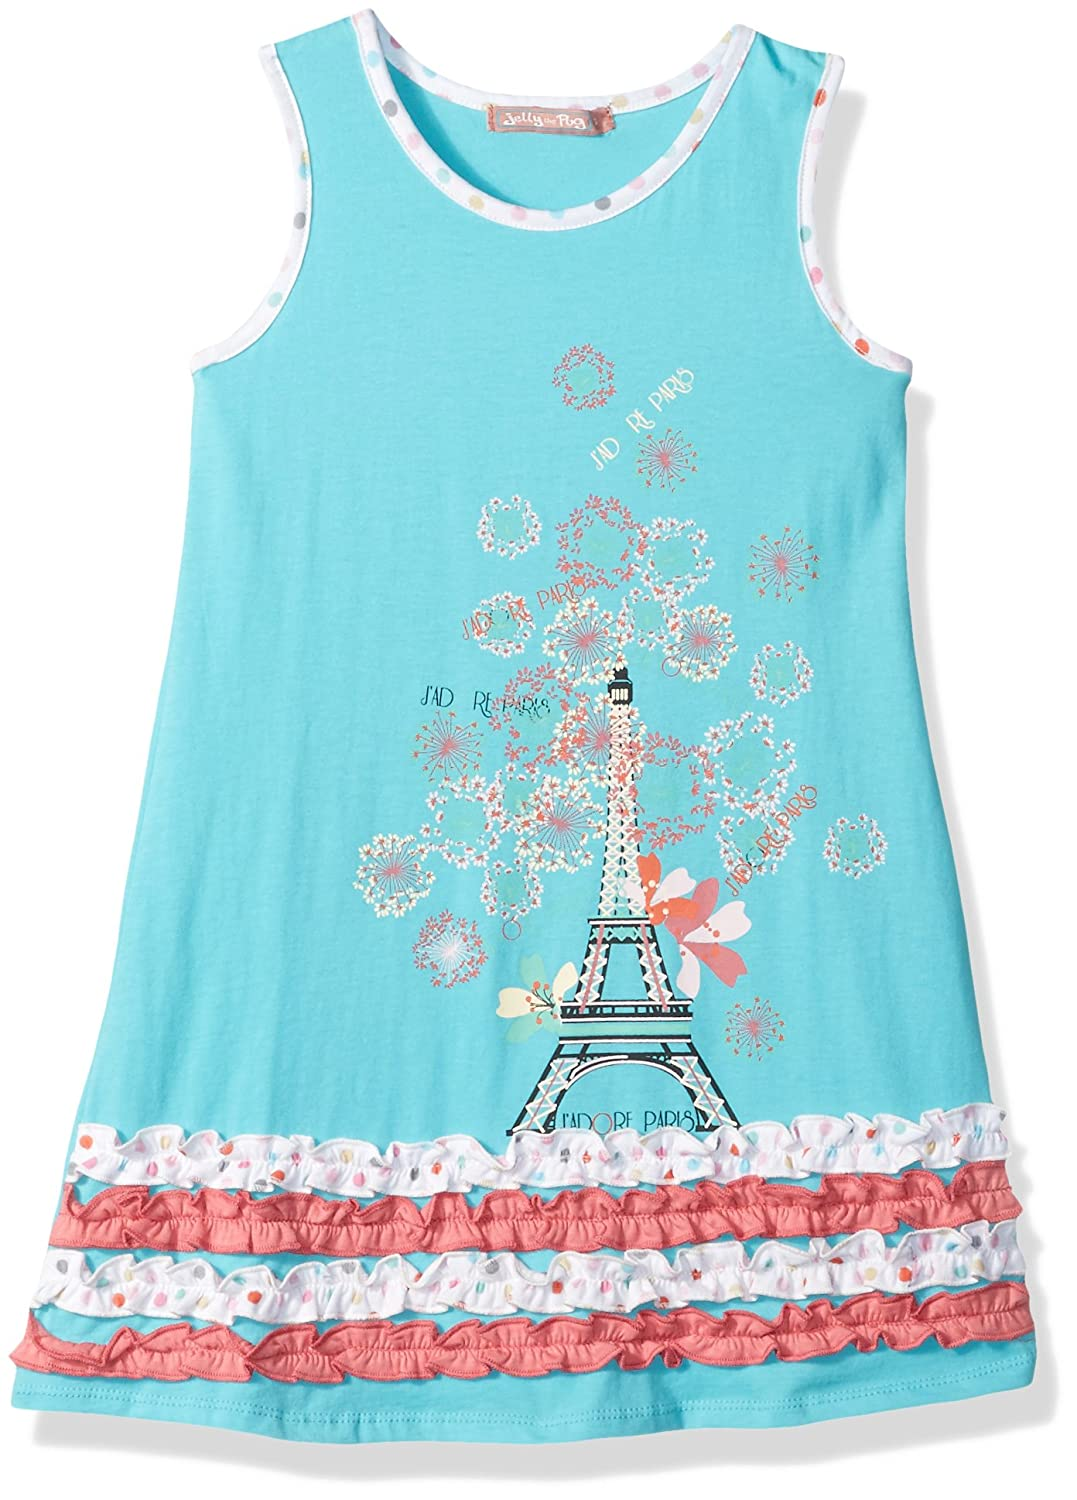 Jelly the Pug Little Girls' Spring In Paris Floral Applique Dress